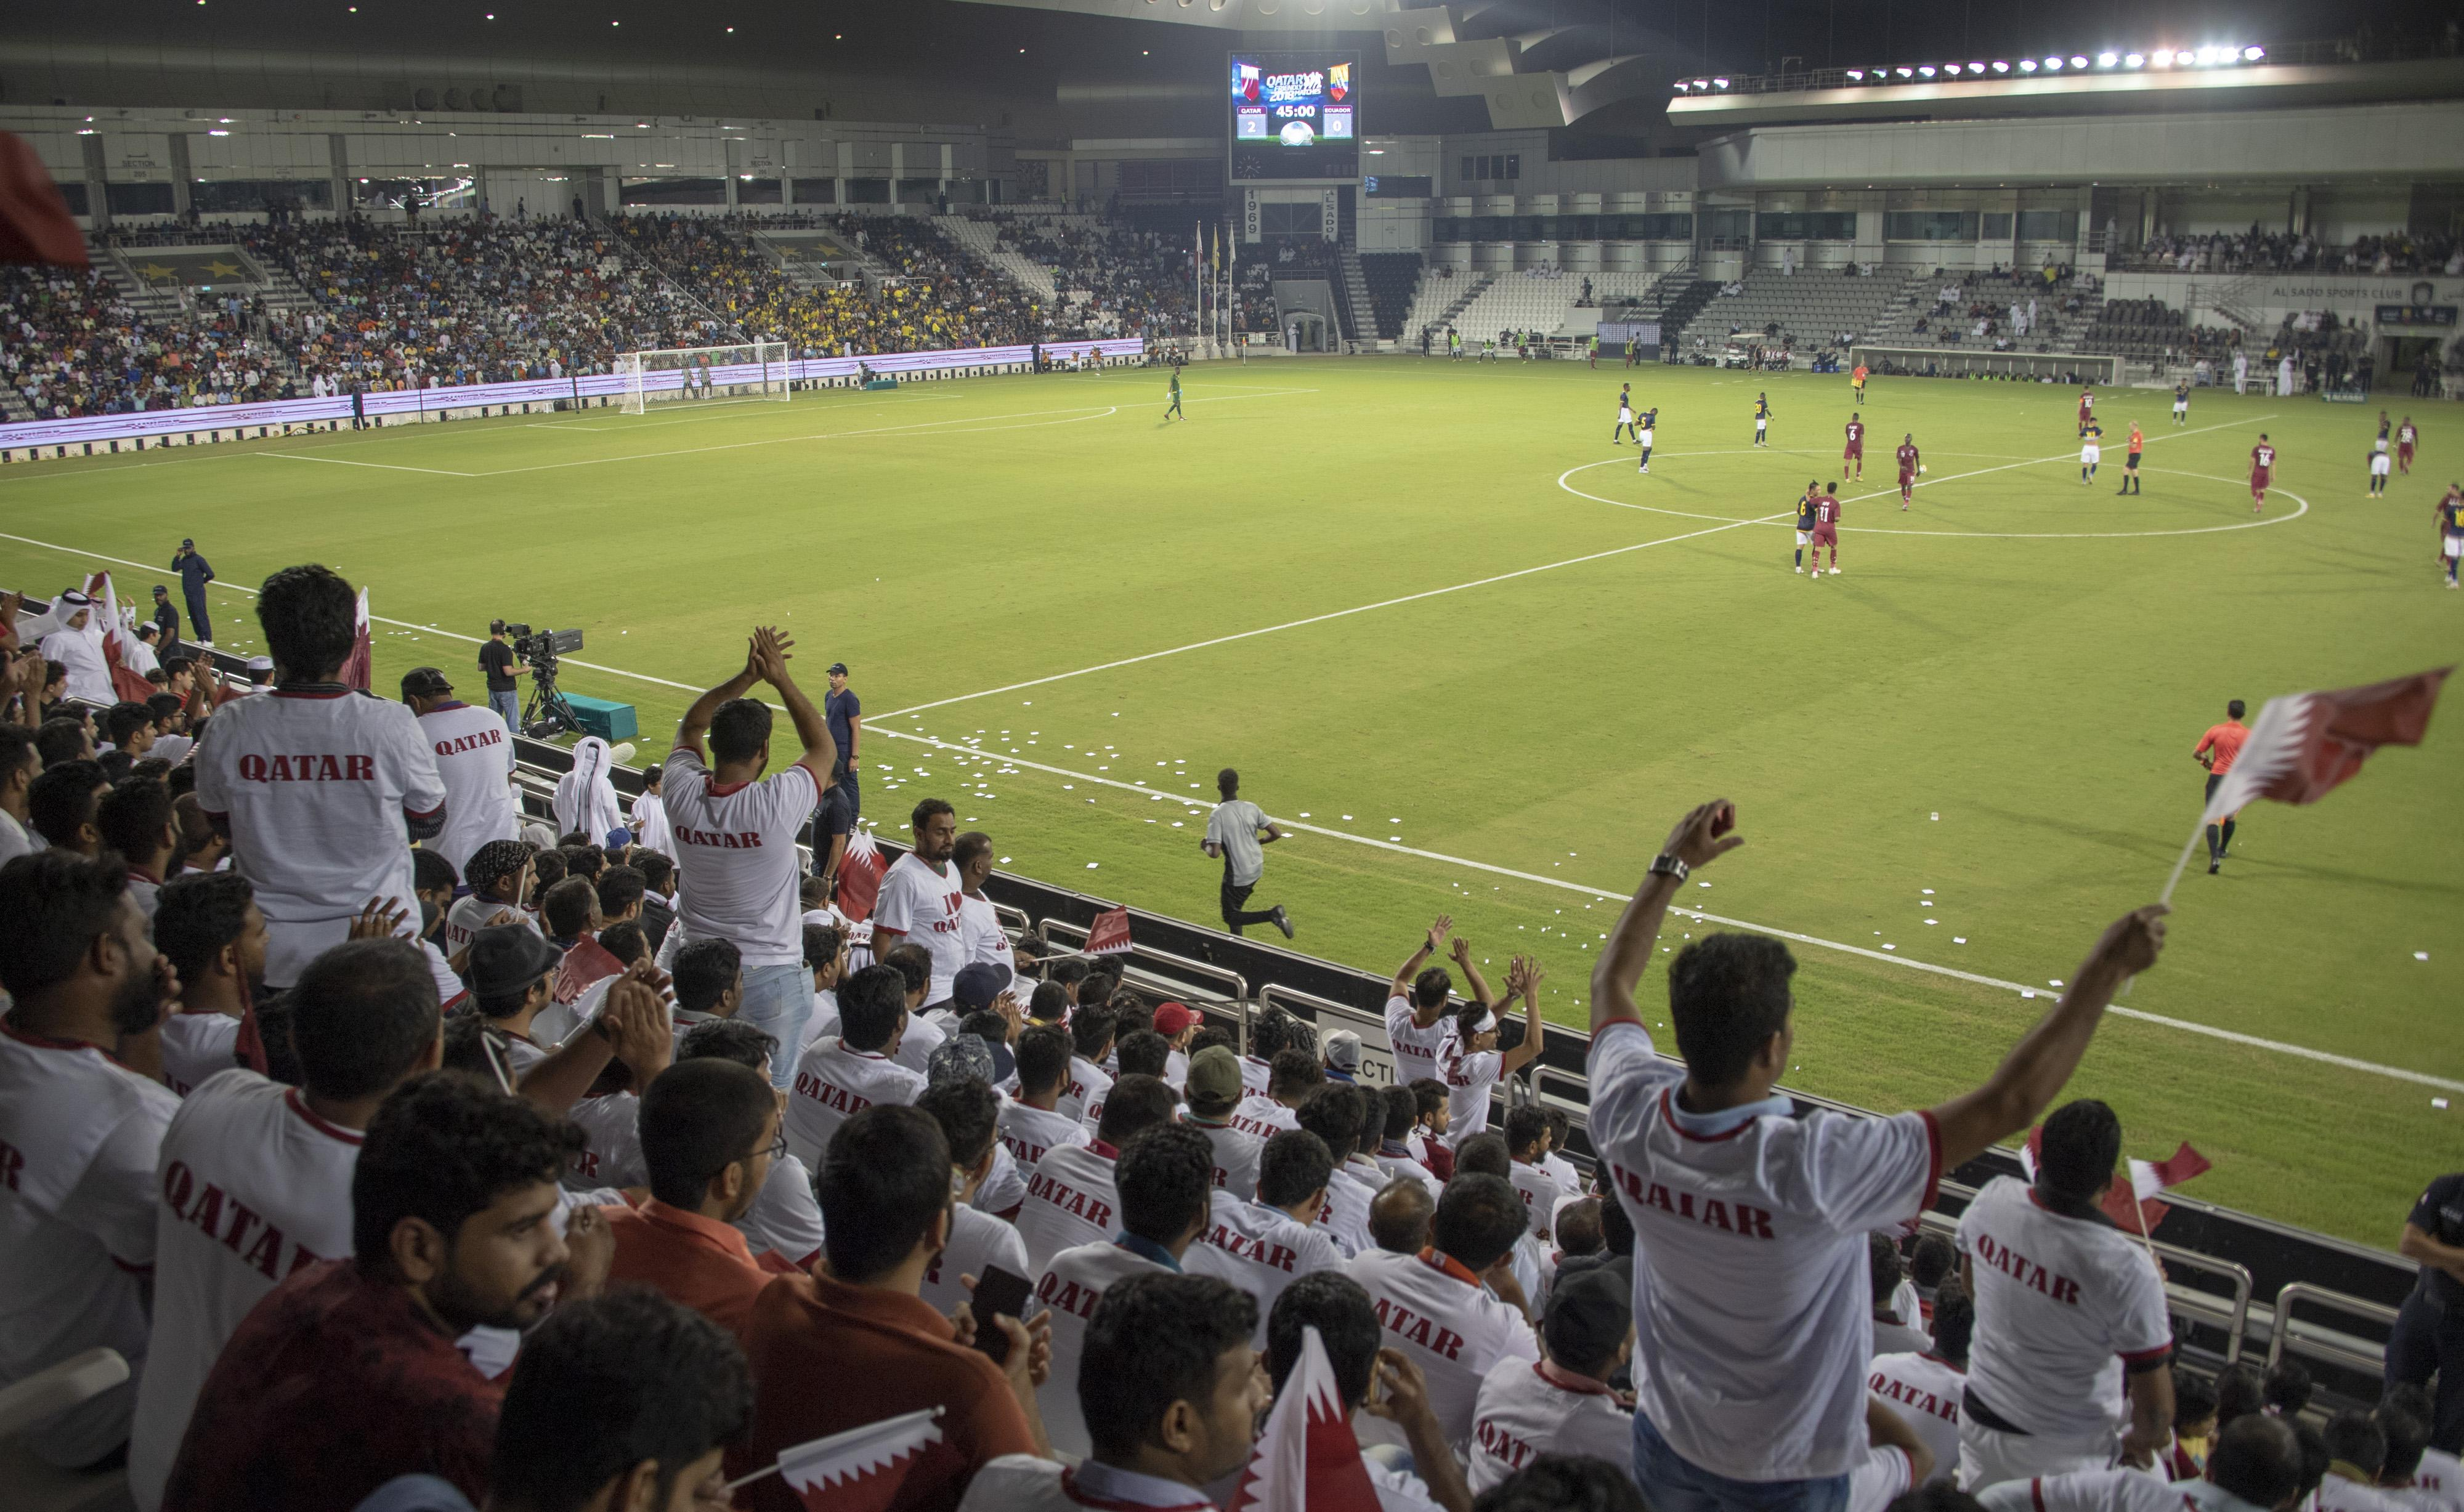 Fans faced stifling temperatures but Qatar authorities are promising new stadiums